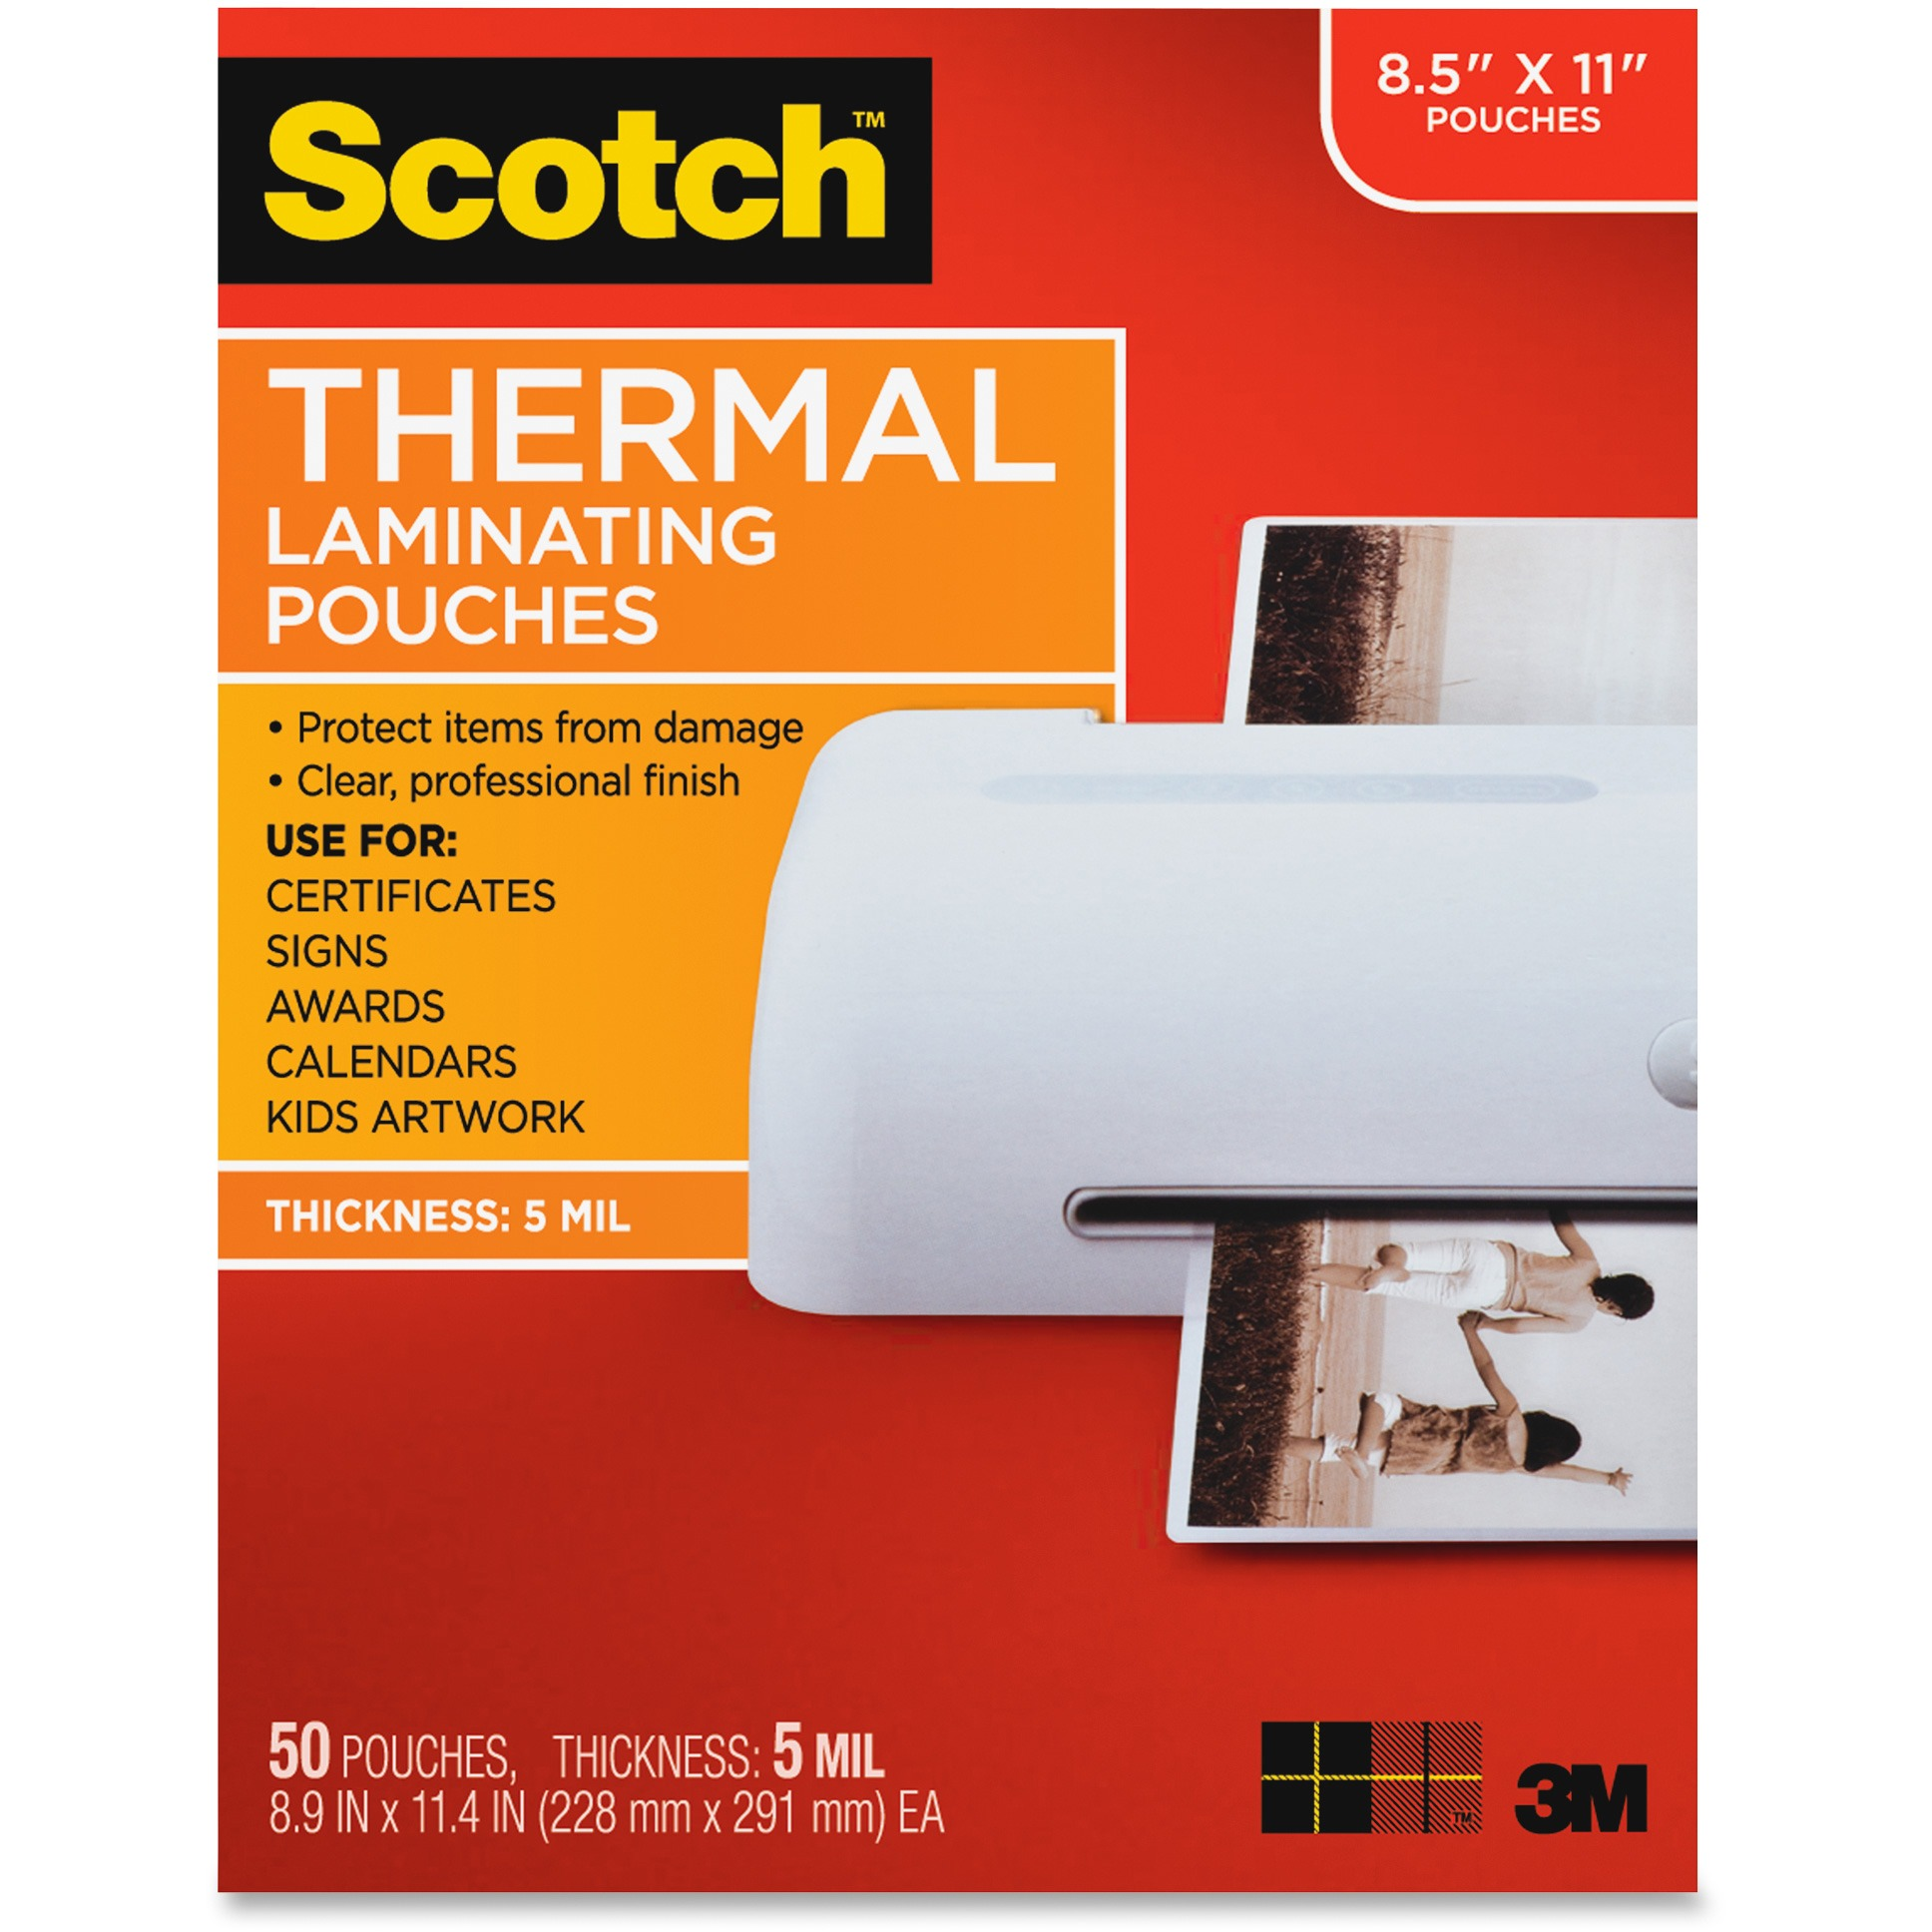 Scotch, MMMTP585450, Thermal Laminating Pouches, 50 / Pack, Clear